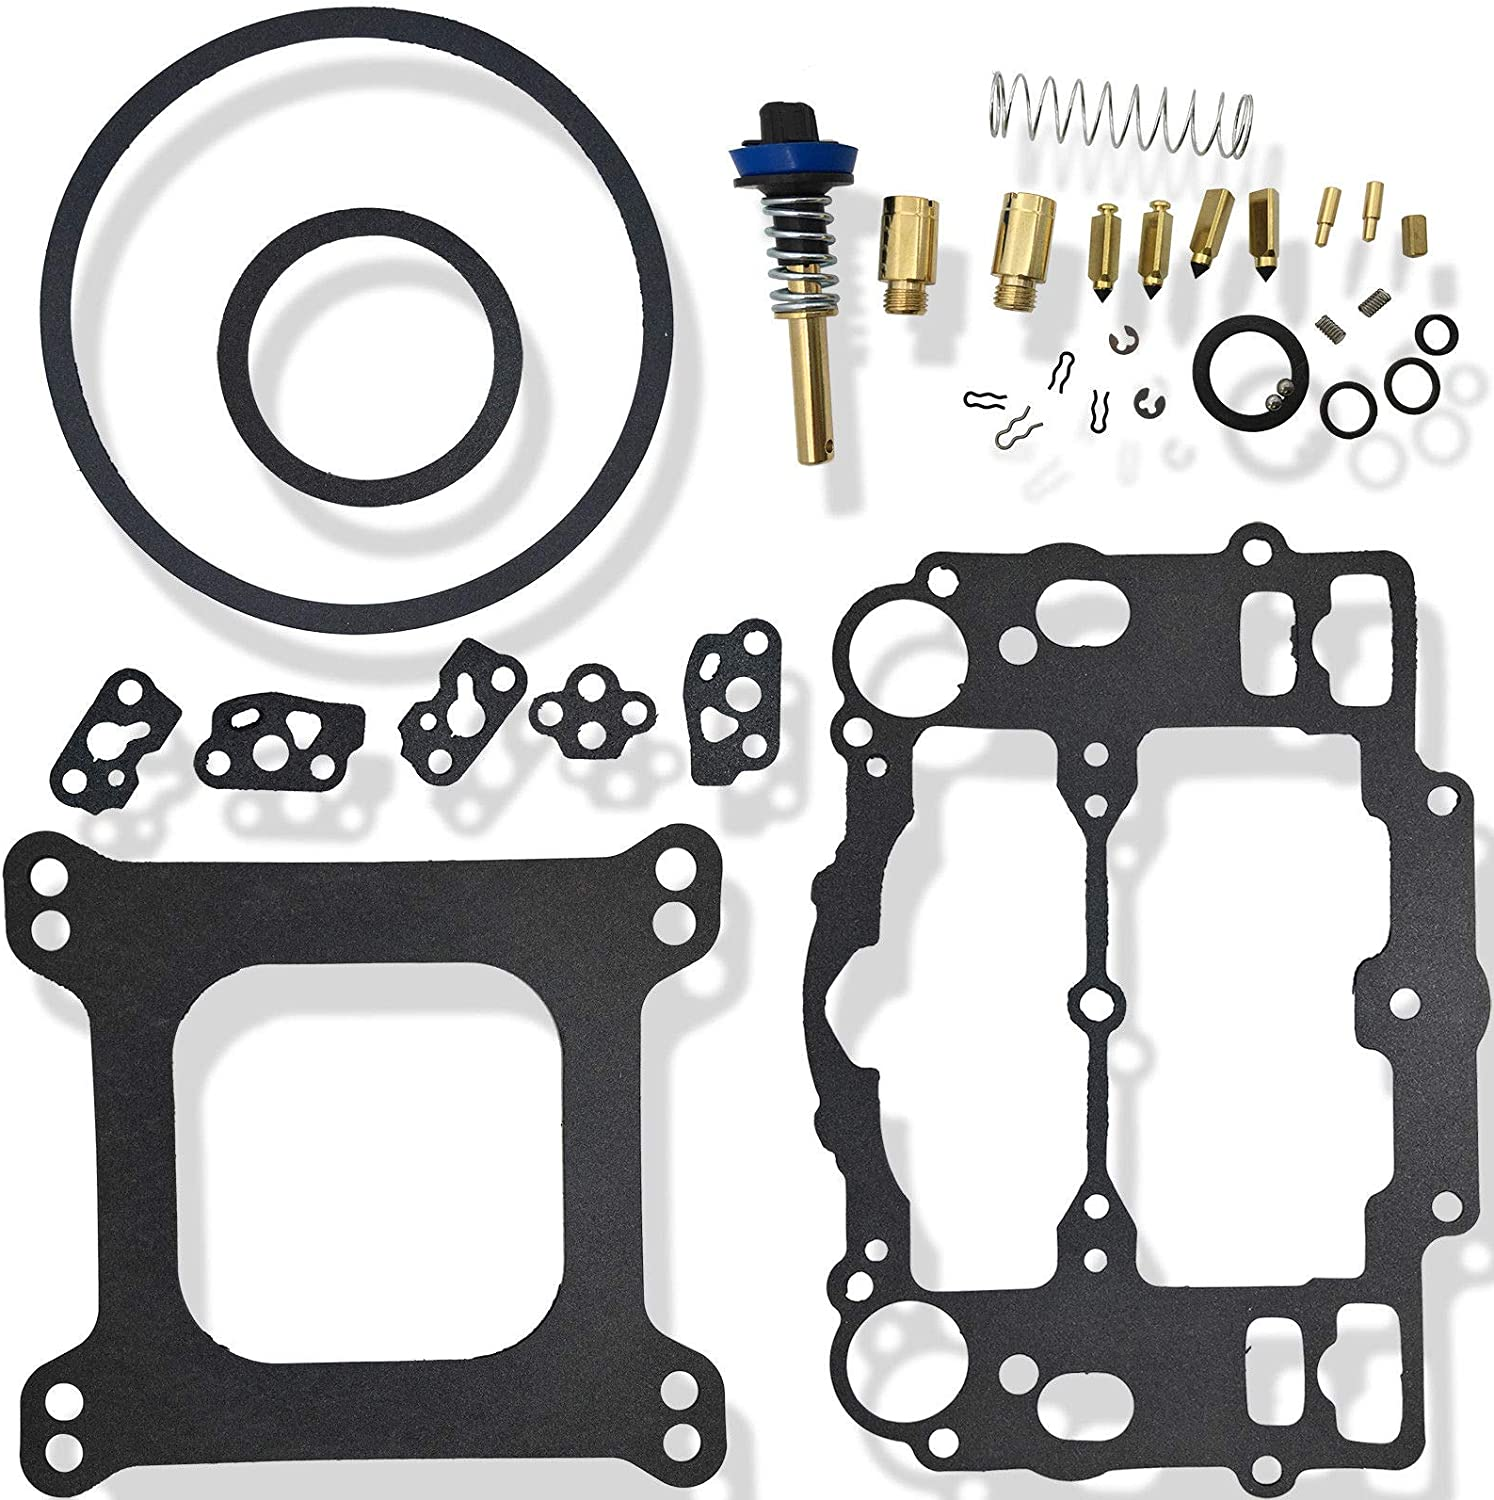 Carburetor Rebuild Repair Kit for Edelbrock 4 bbl Carb /& Carter 9000 series AFB